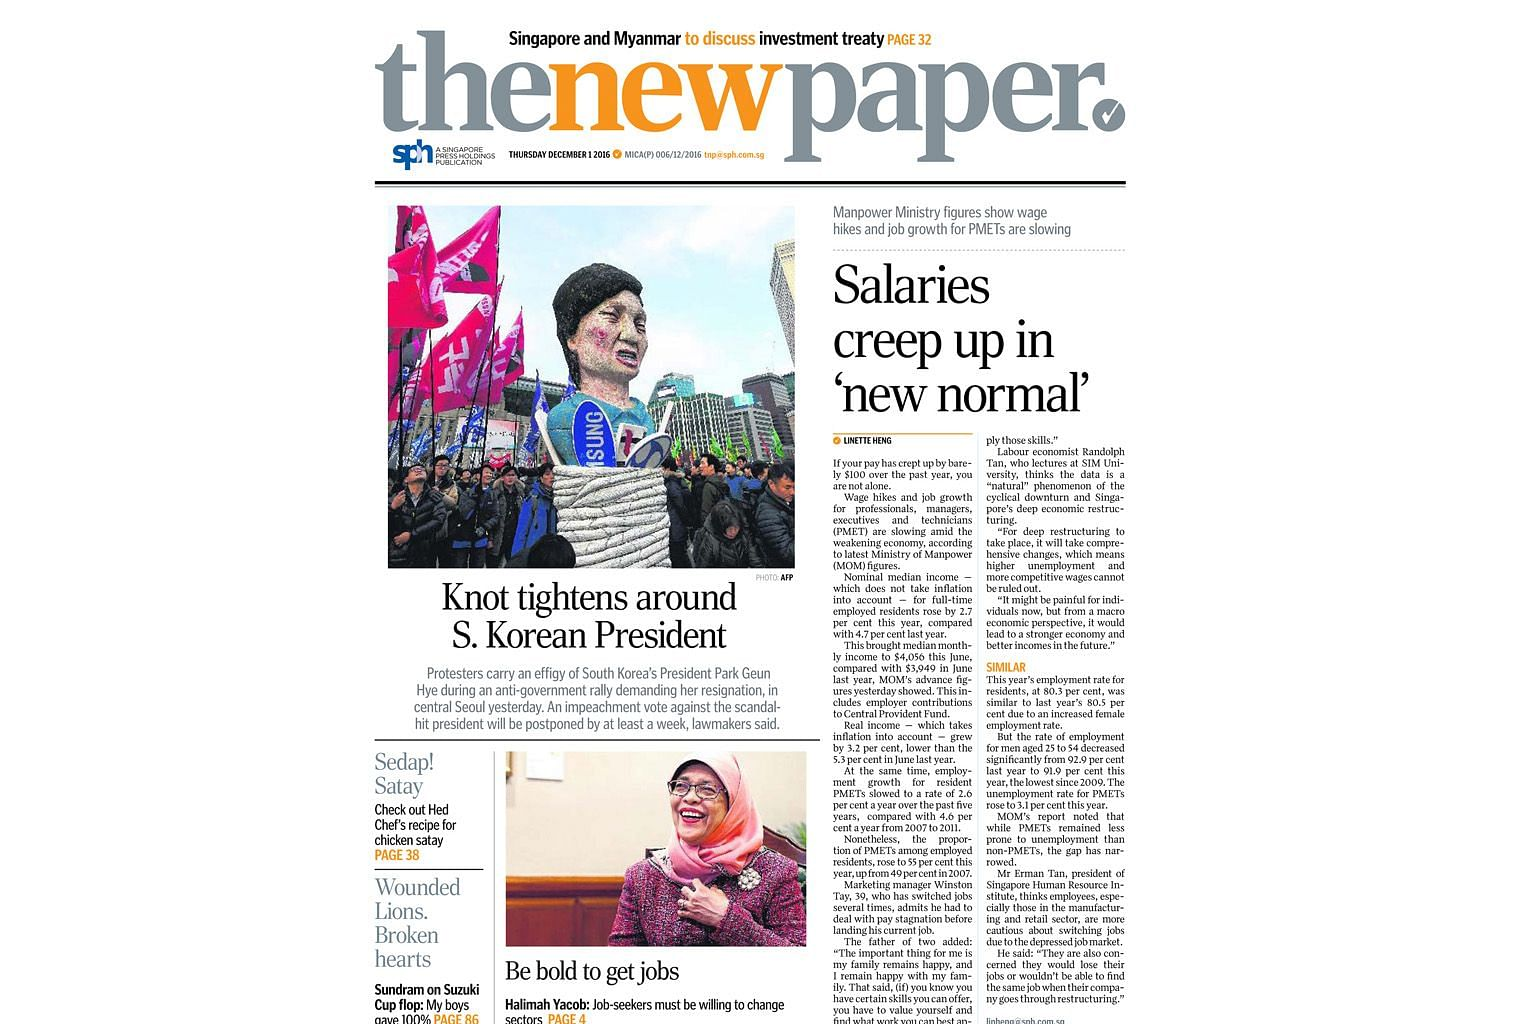 The revamped TNP has a fresh mix of content aimed at PMEBs, but it will still hold on to its traditional strengths - coverage of sports, food and entertainment, and heart-tugging stories about people in Singapore.